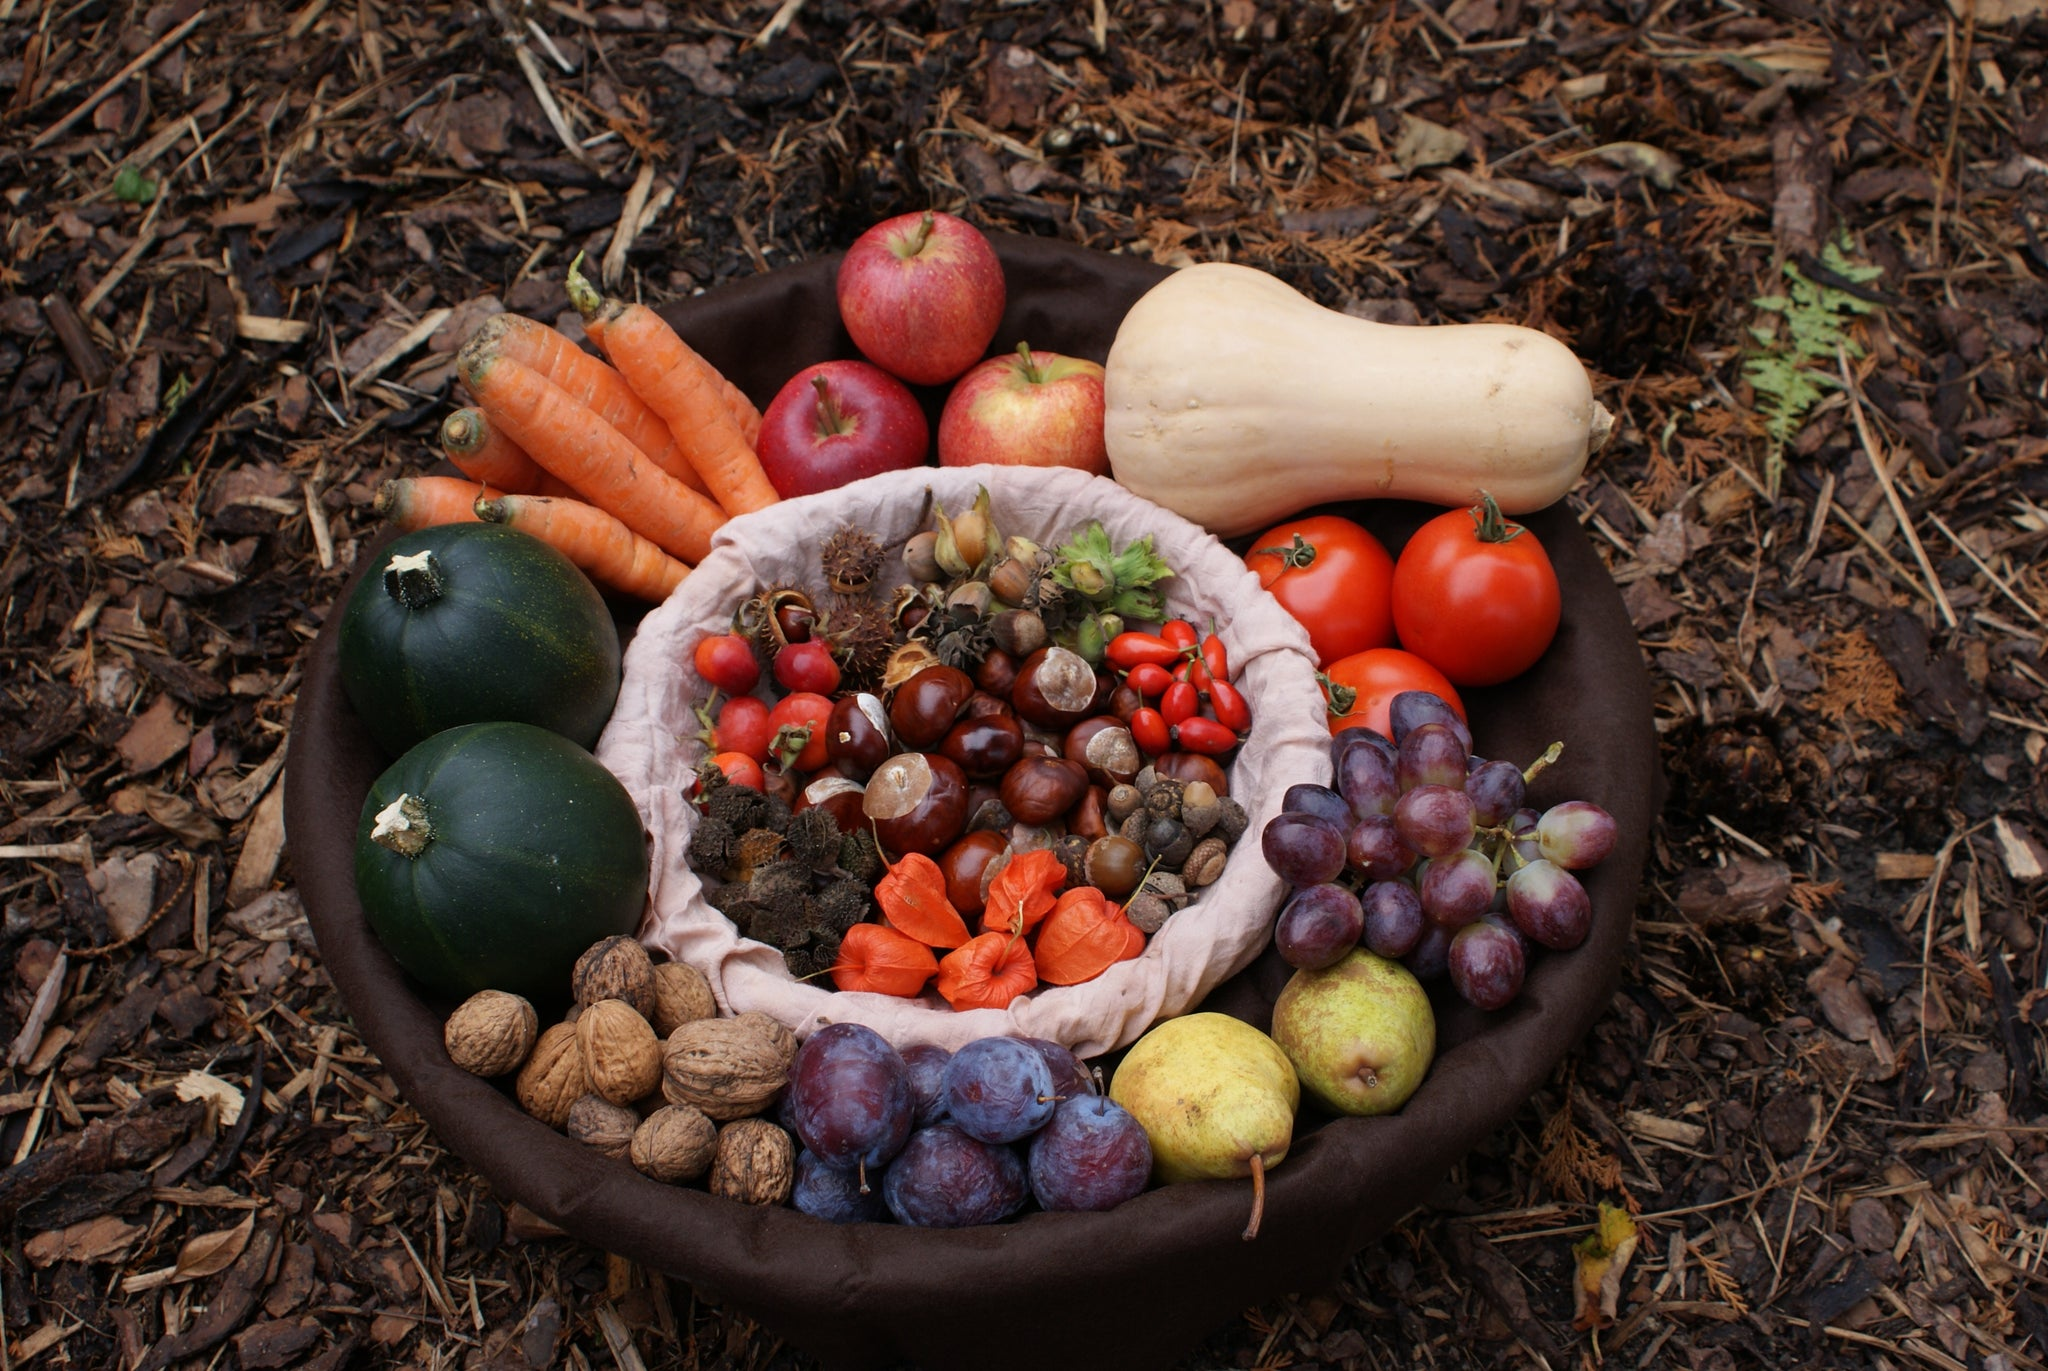 Thanksgiving harvest with vegetables, fruits, and nuts in a bowl on the earthy ground